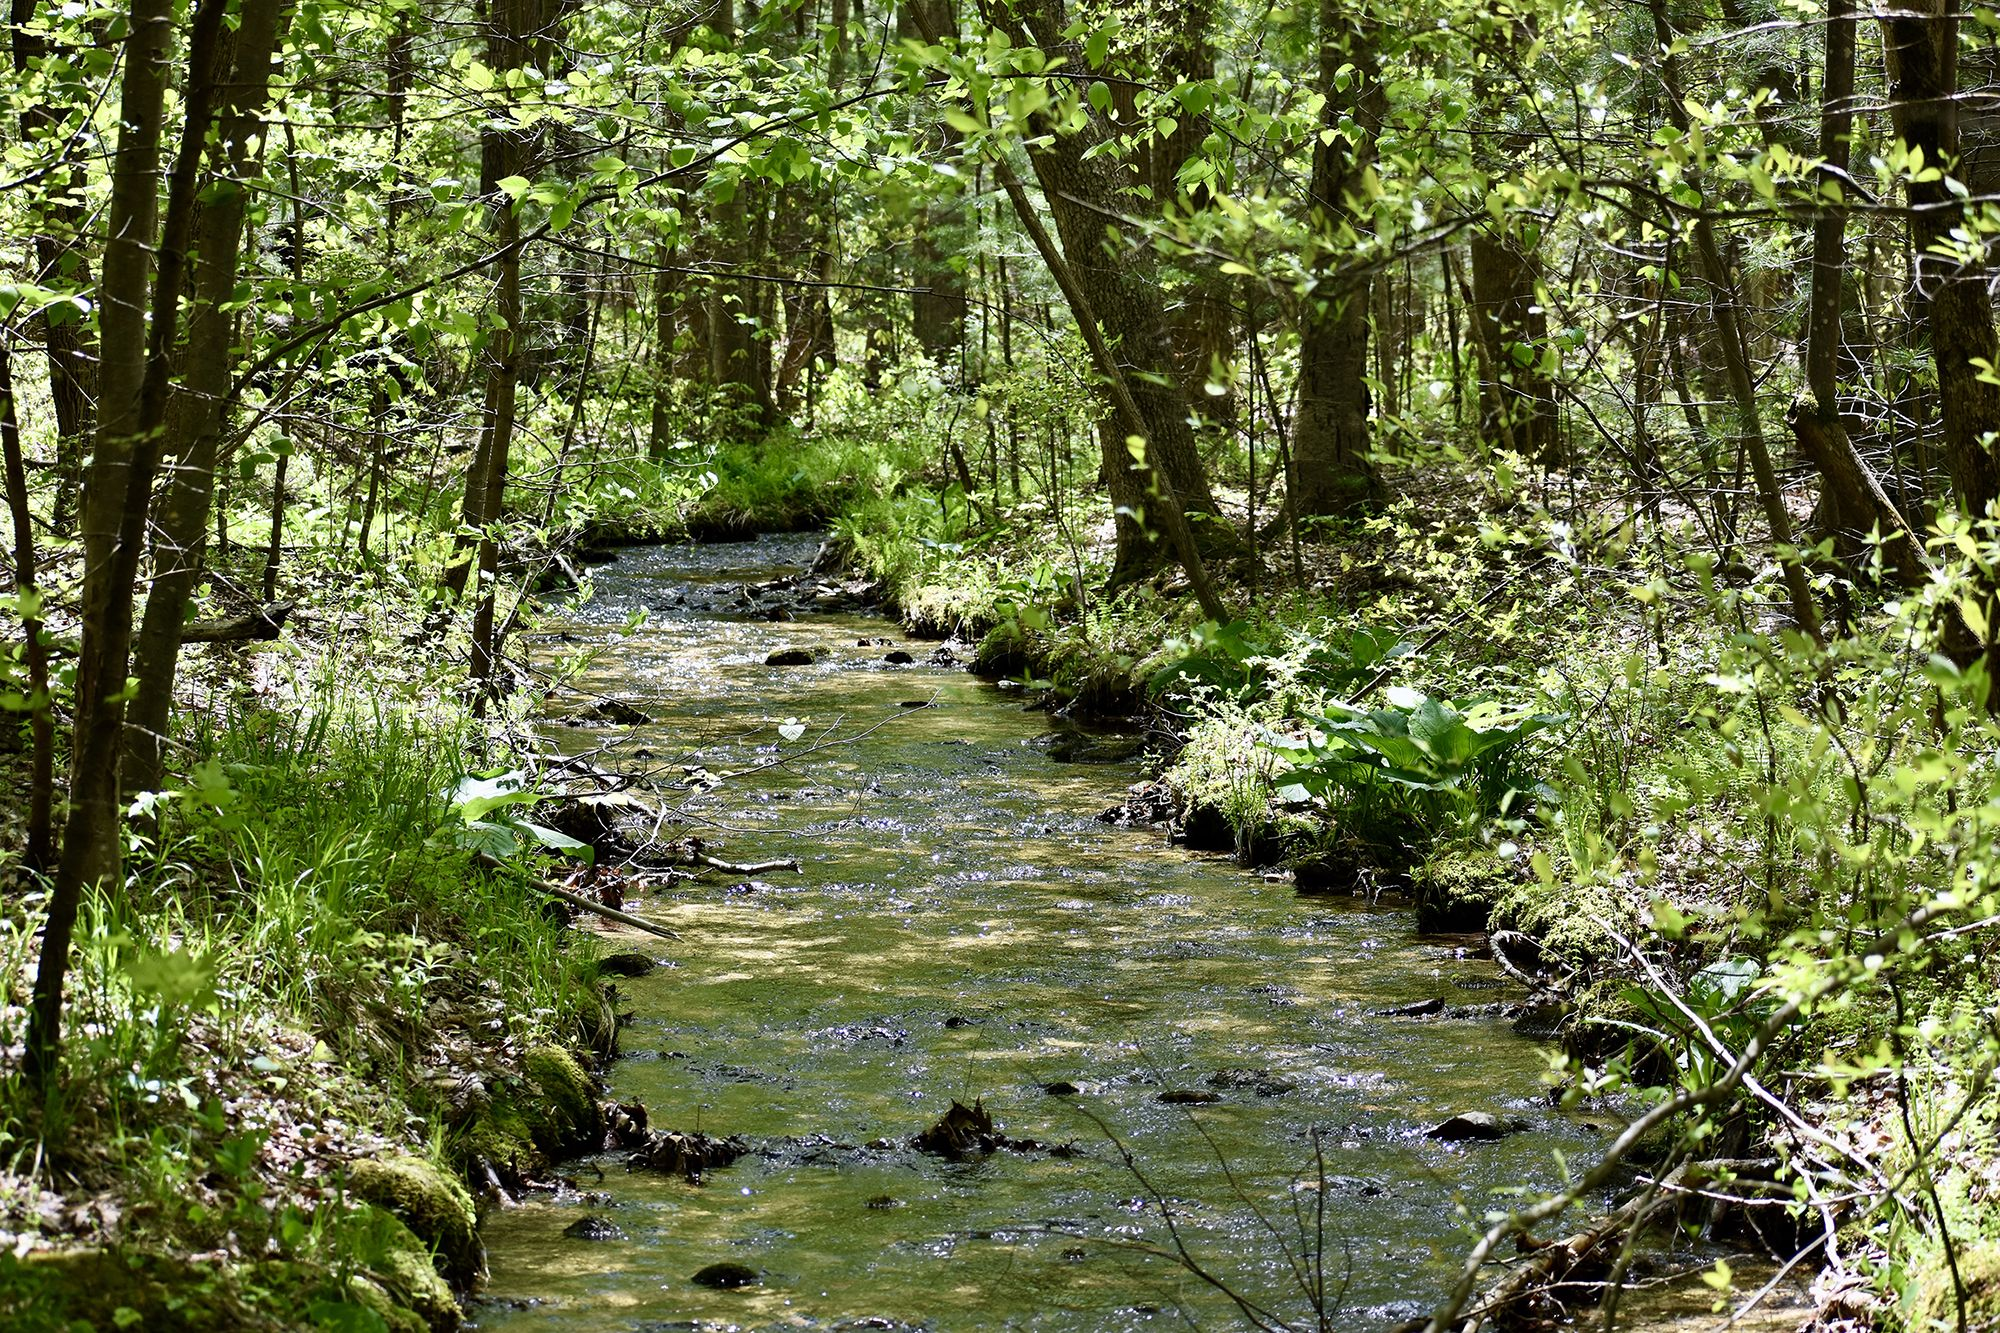 A wide mountain stream curves into the distance through a thick forest. The water ripples over stones and fallen branches.